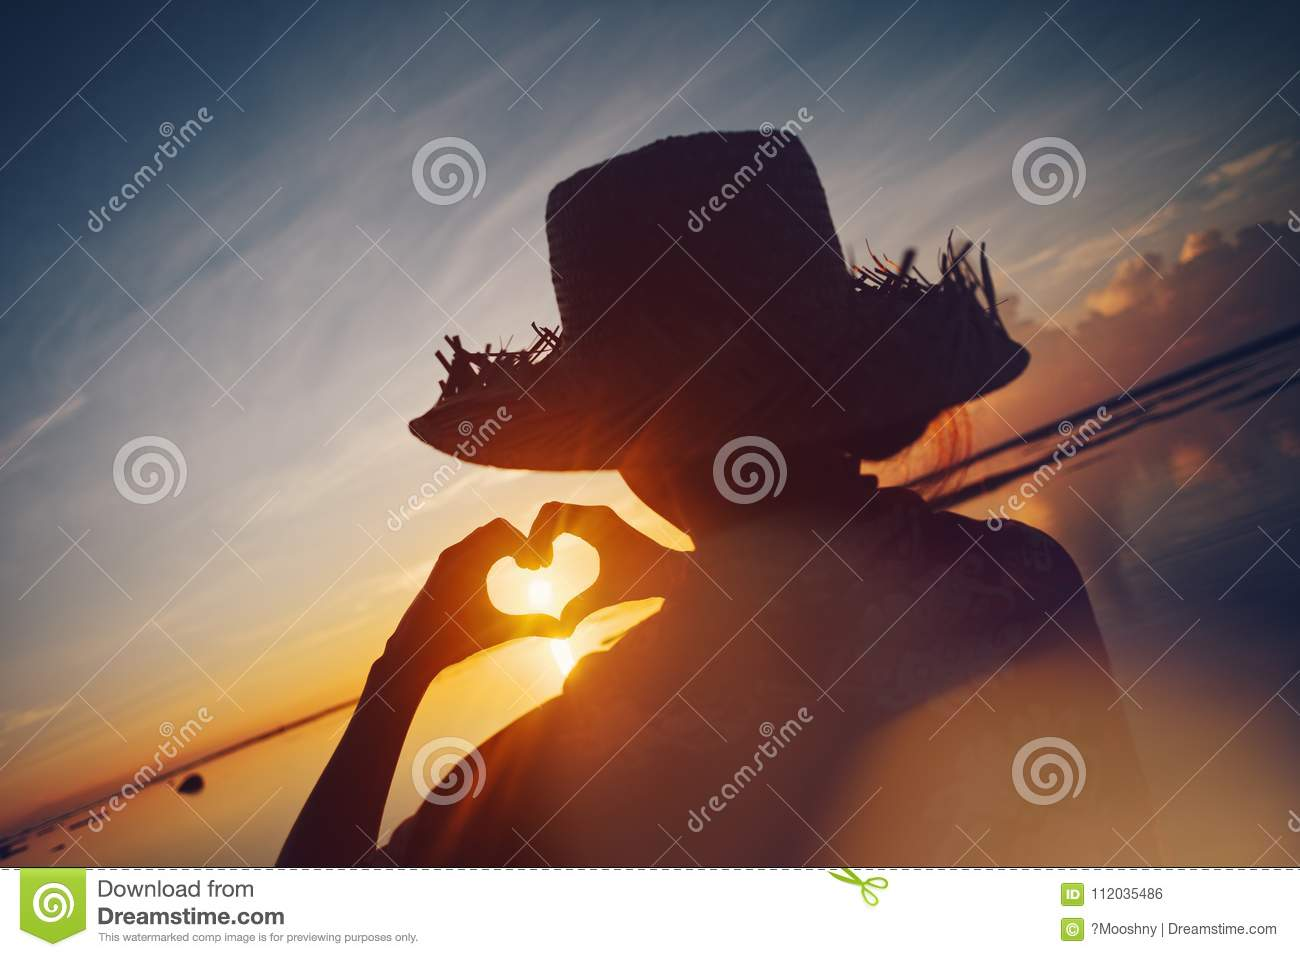 Woman In Straw Hat Making Heart Symbol With Her Hands At Sunrise